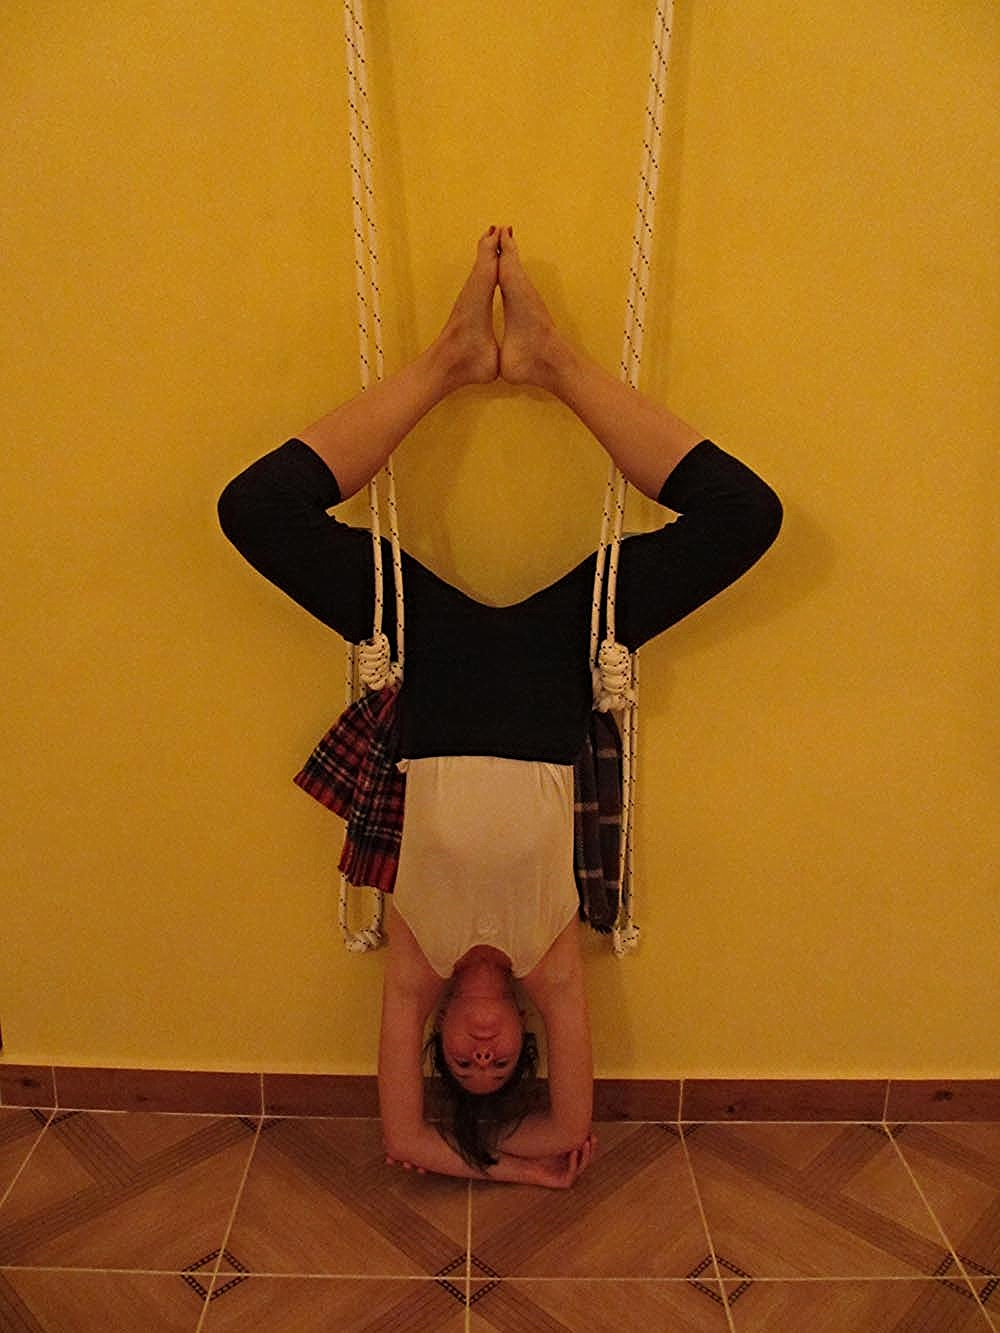 Why not come and hang out with us at Yoga Studio Nuweiba.